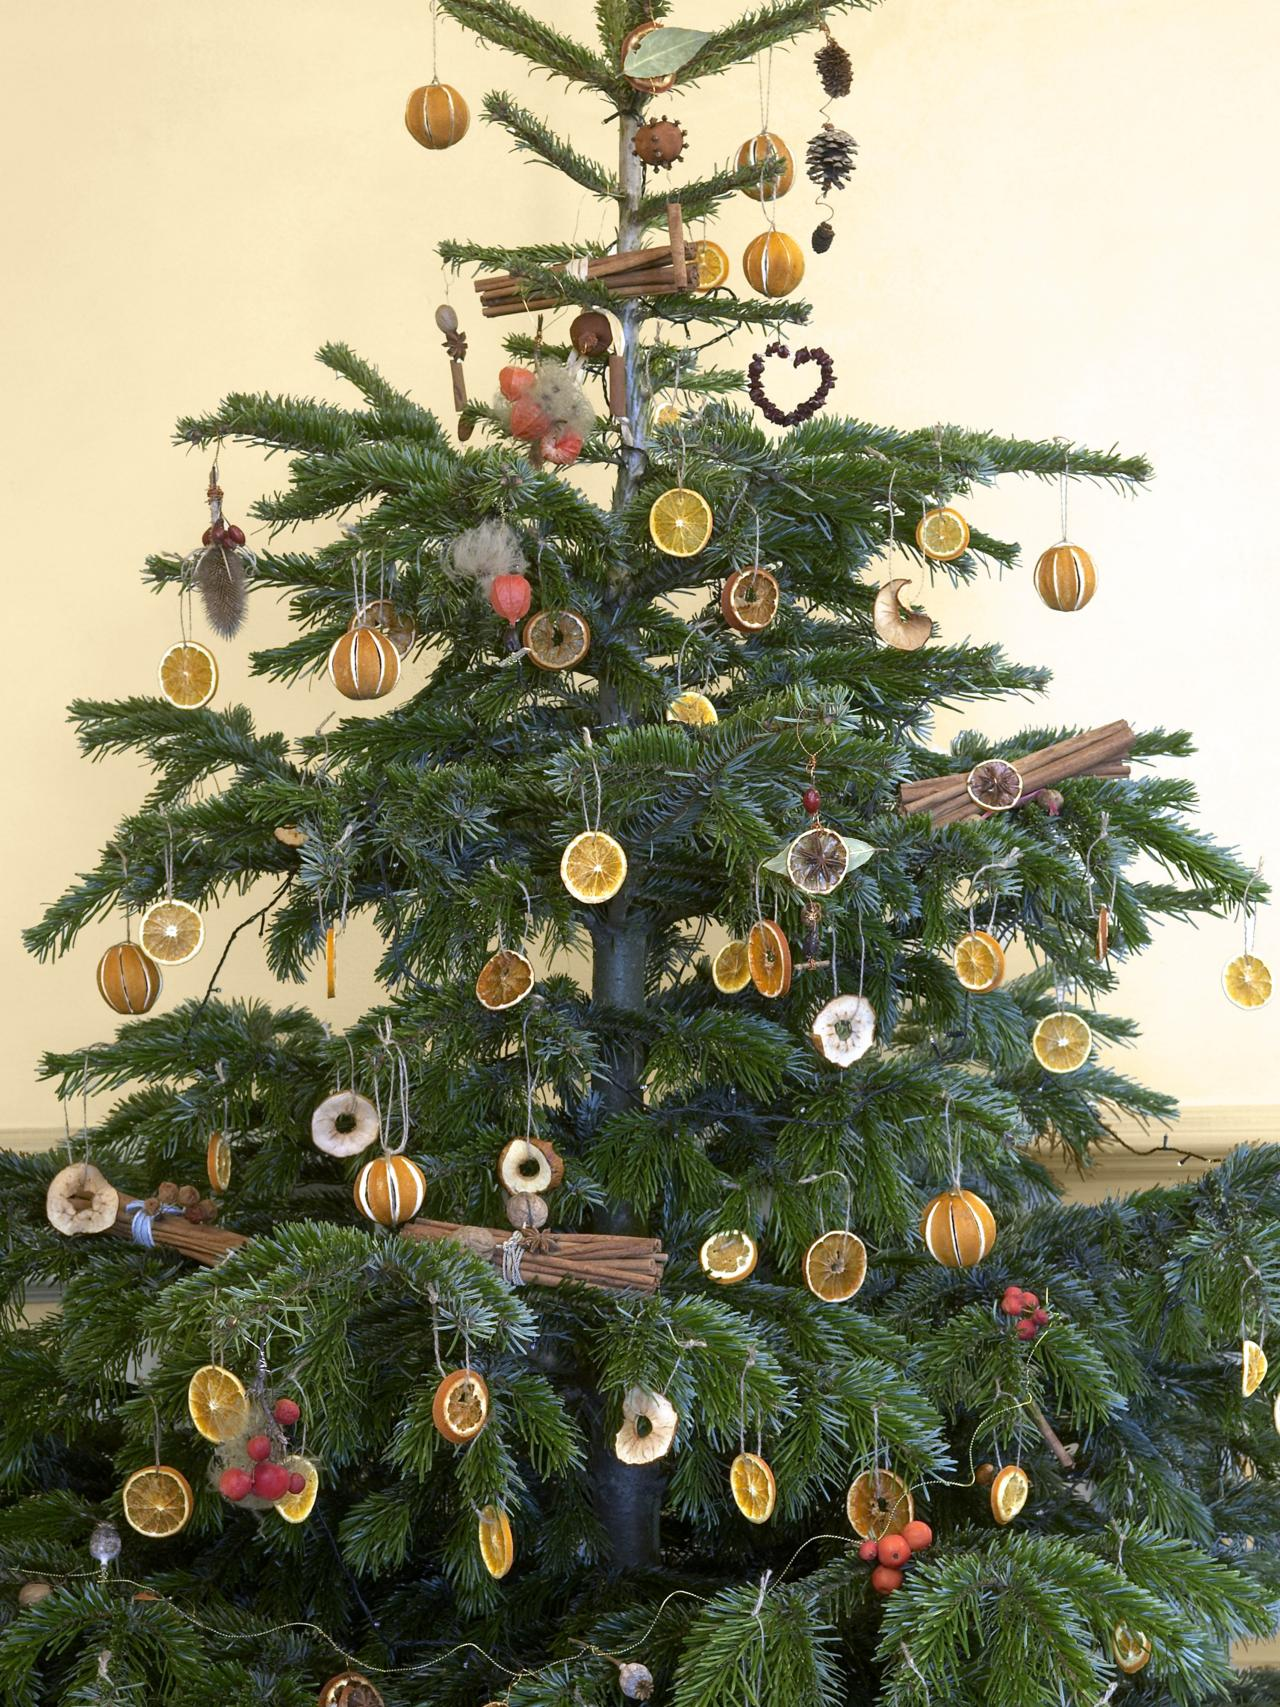 Diy Decorating An Outdoor Christmas Tree The Natural Way Arbor Day Blog